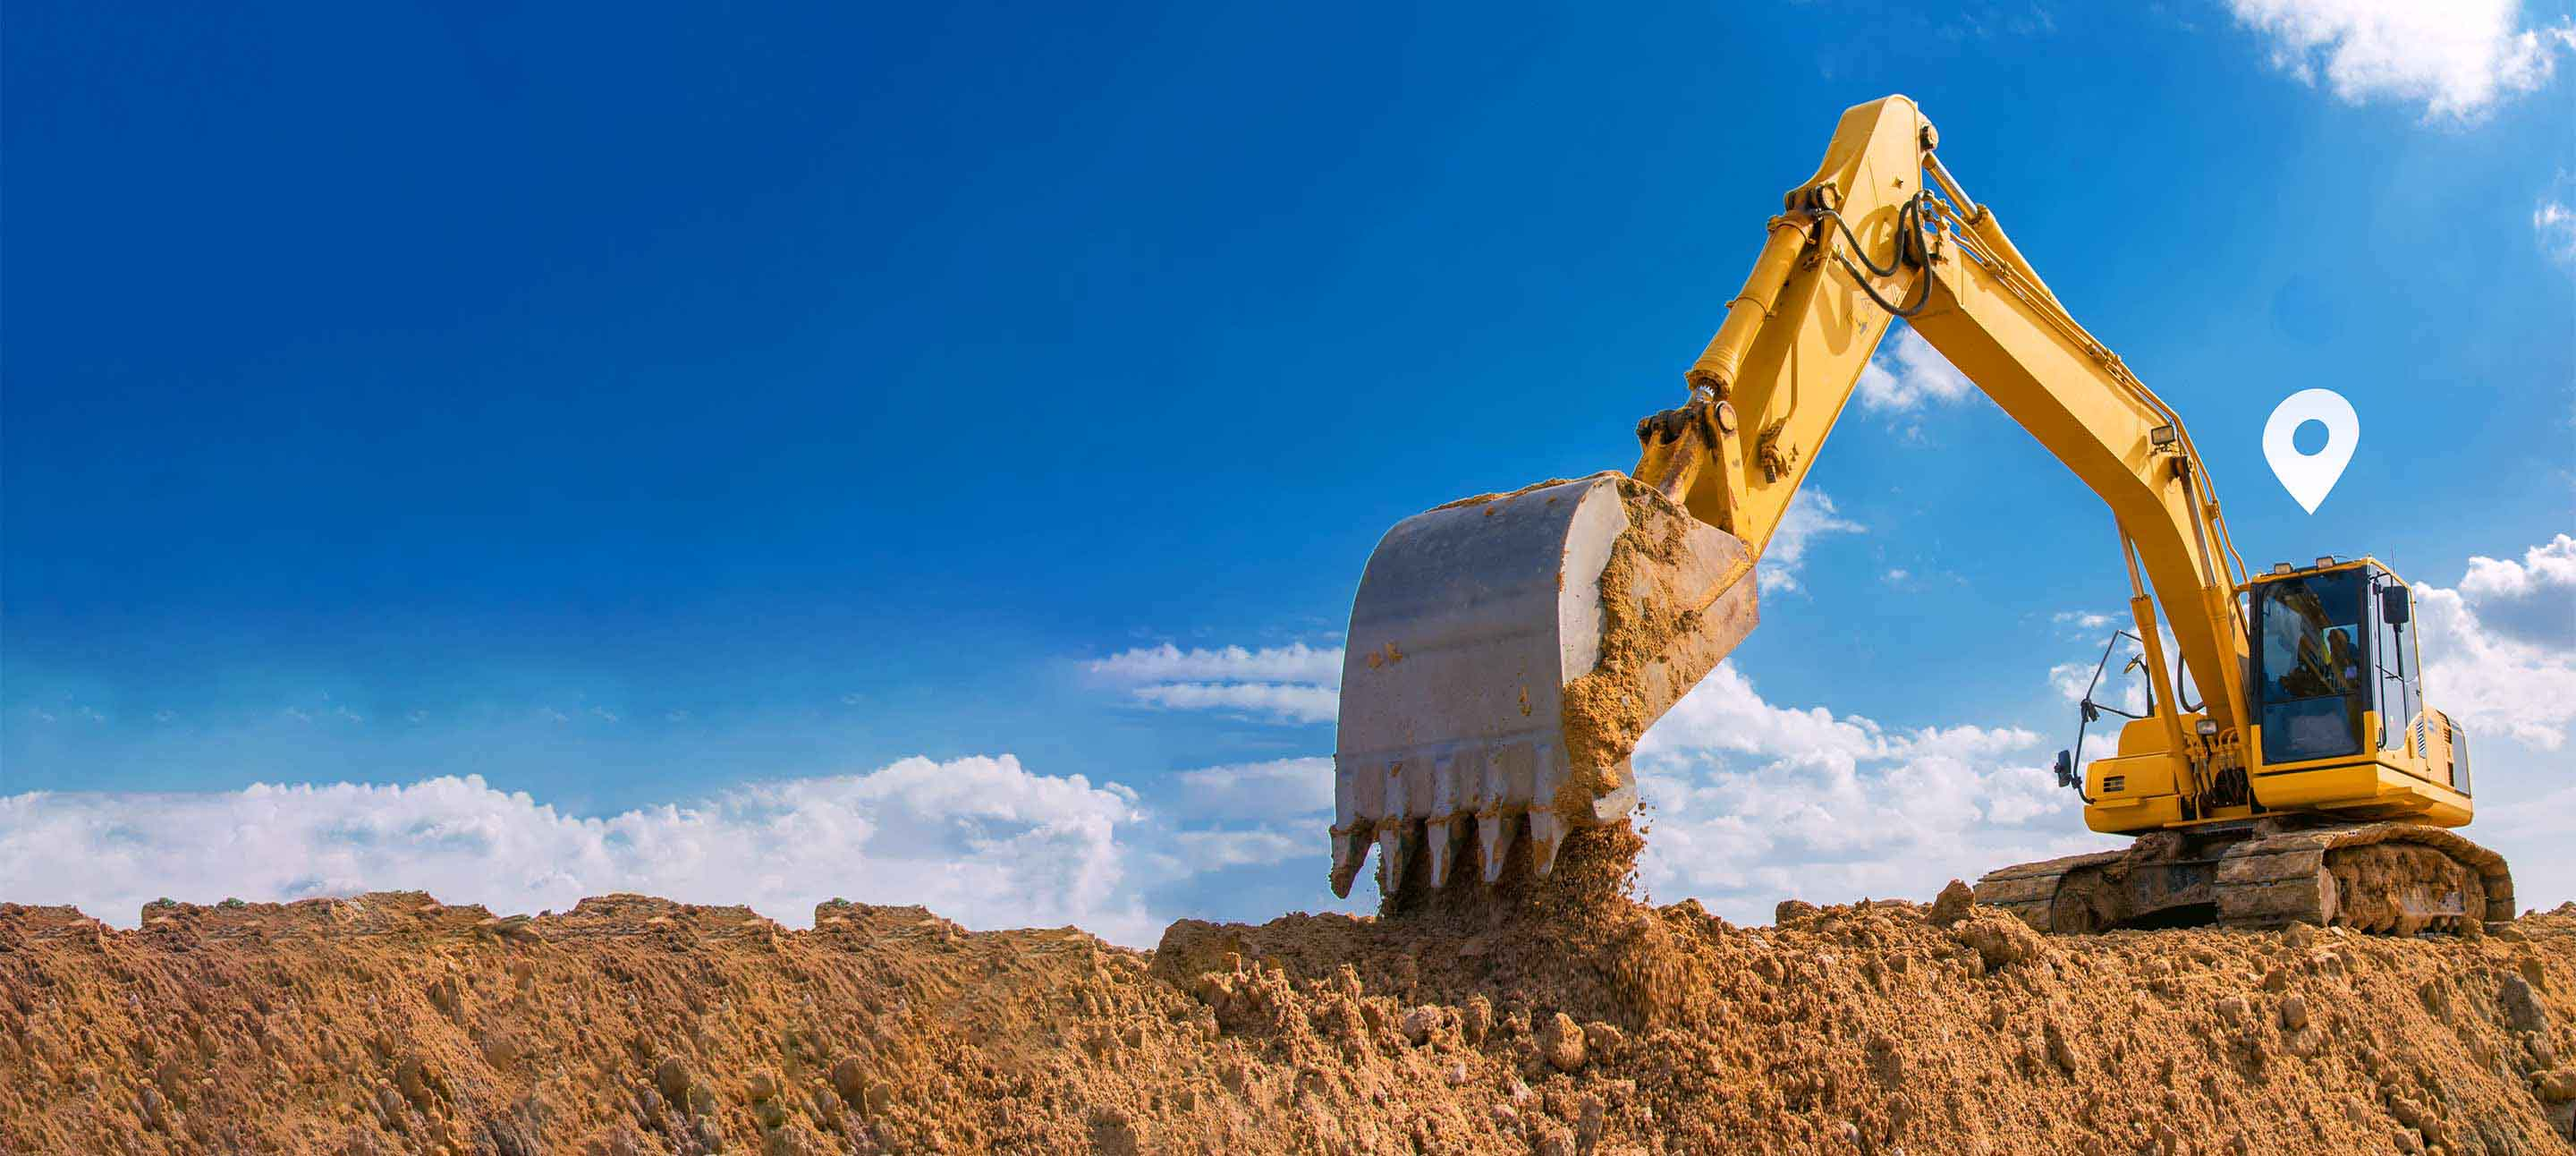 Yellow excavator picking up dirt being tracked using Geotab software